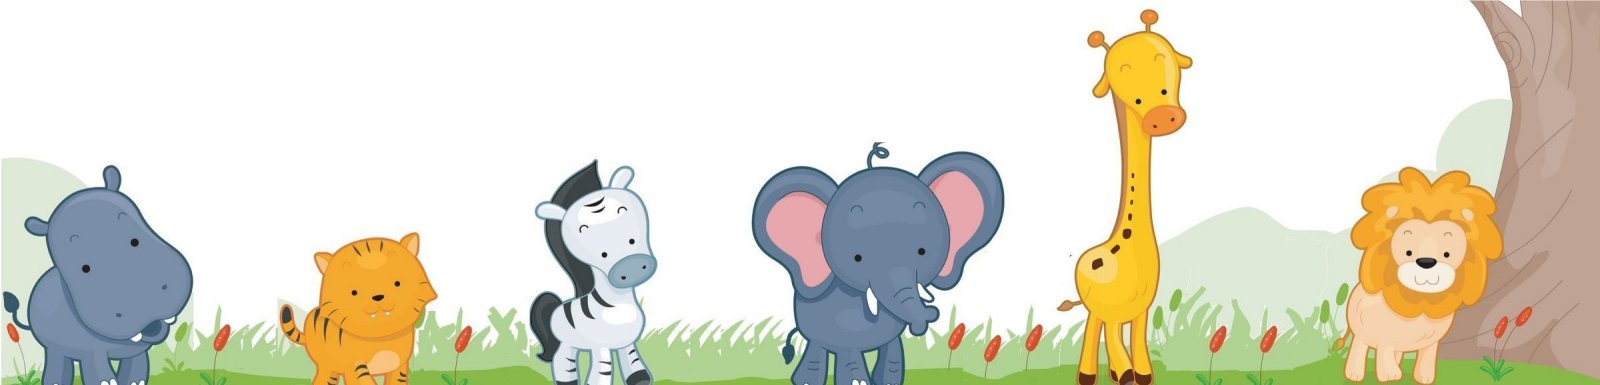 Zoo Animals Border For Contact Us Page